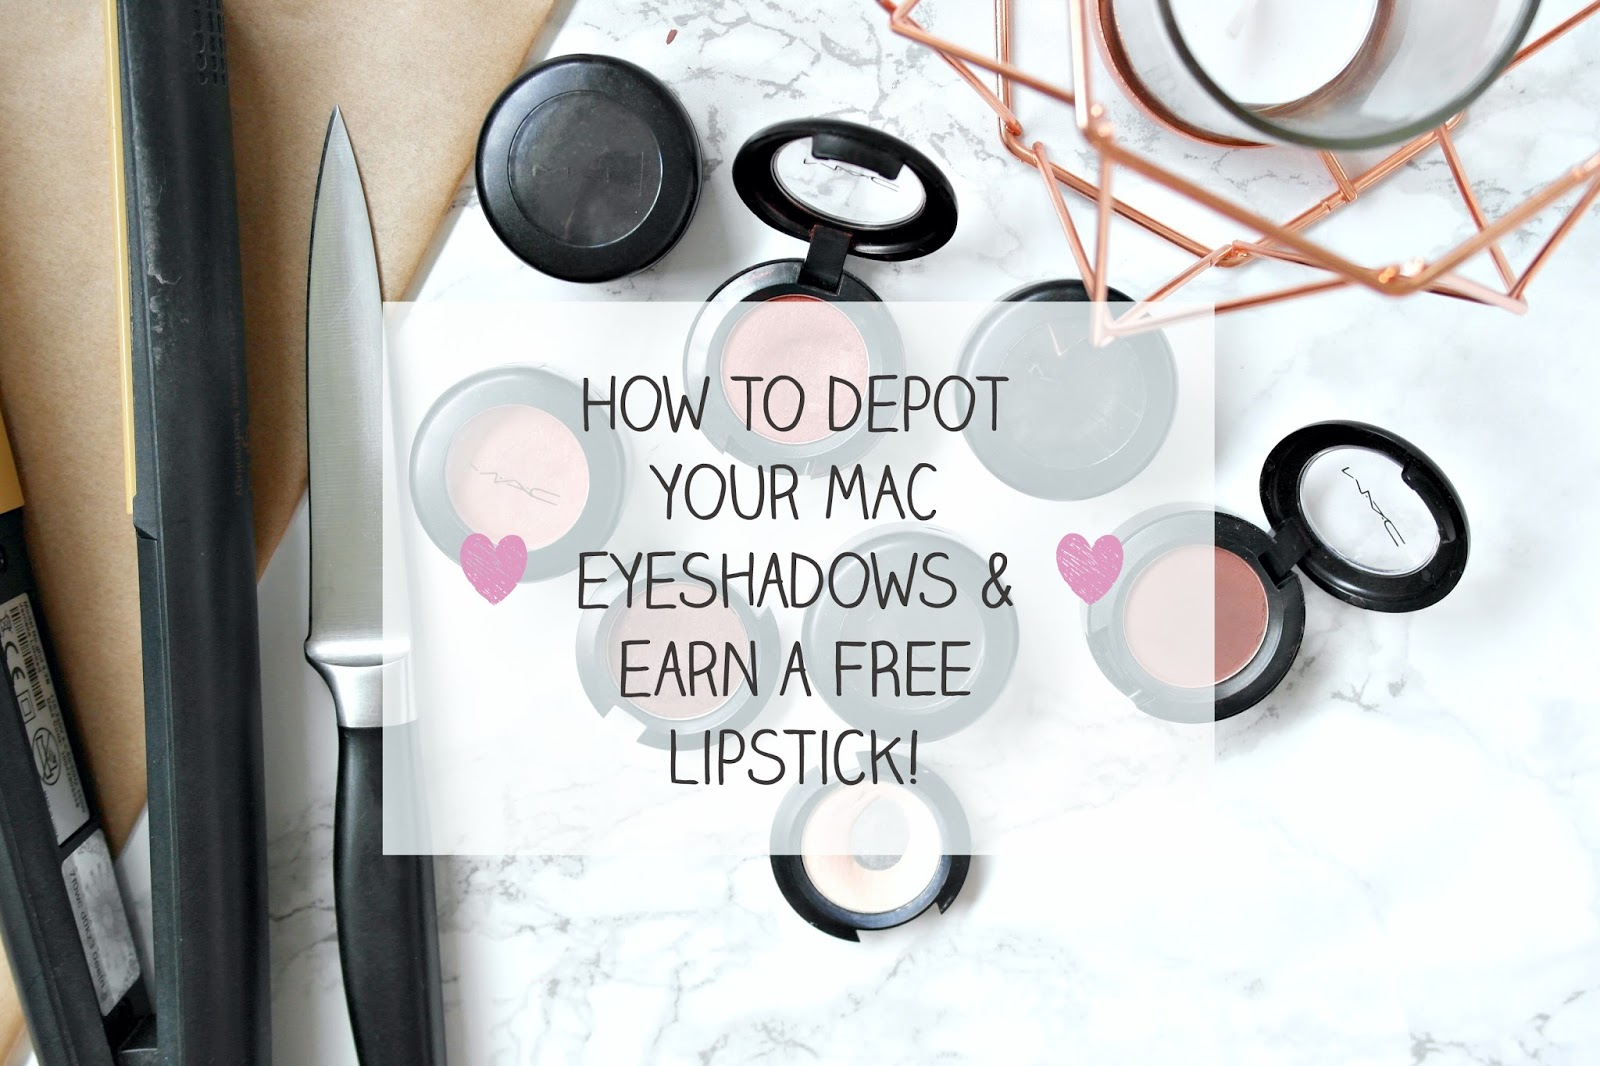 how to depot MAC eyeshadows, MAC, Back to MAC, how to guide